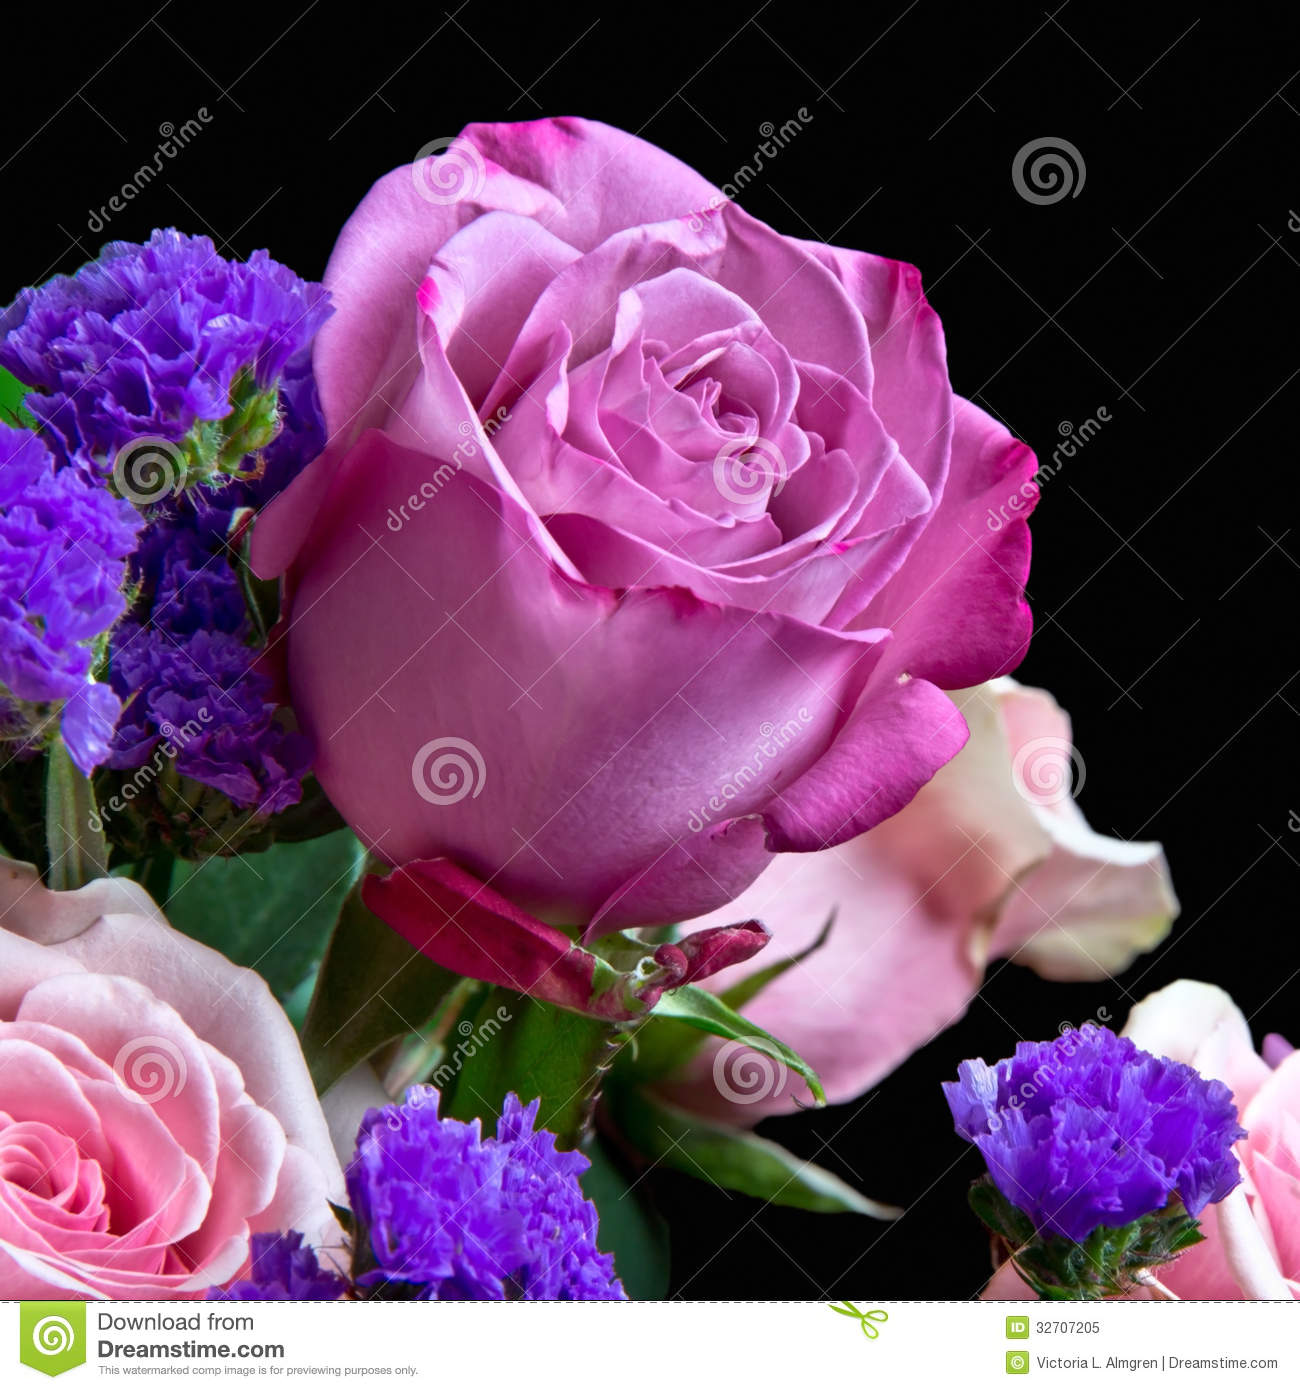 Rose Bouquet Royalty Free Stock Photo - Image: 32707205  One